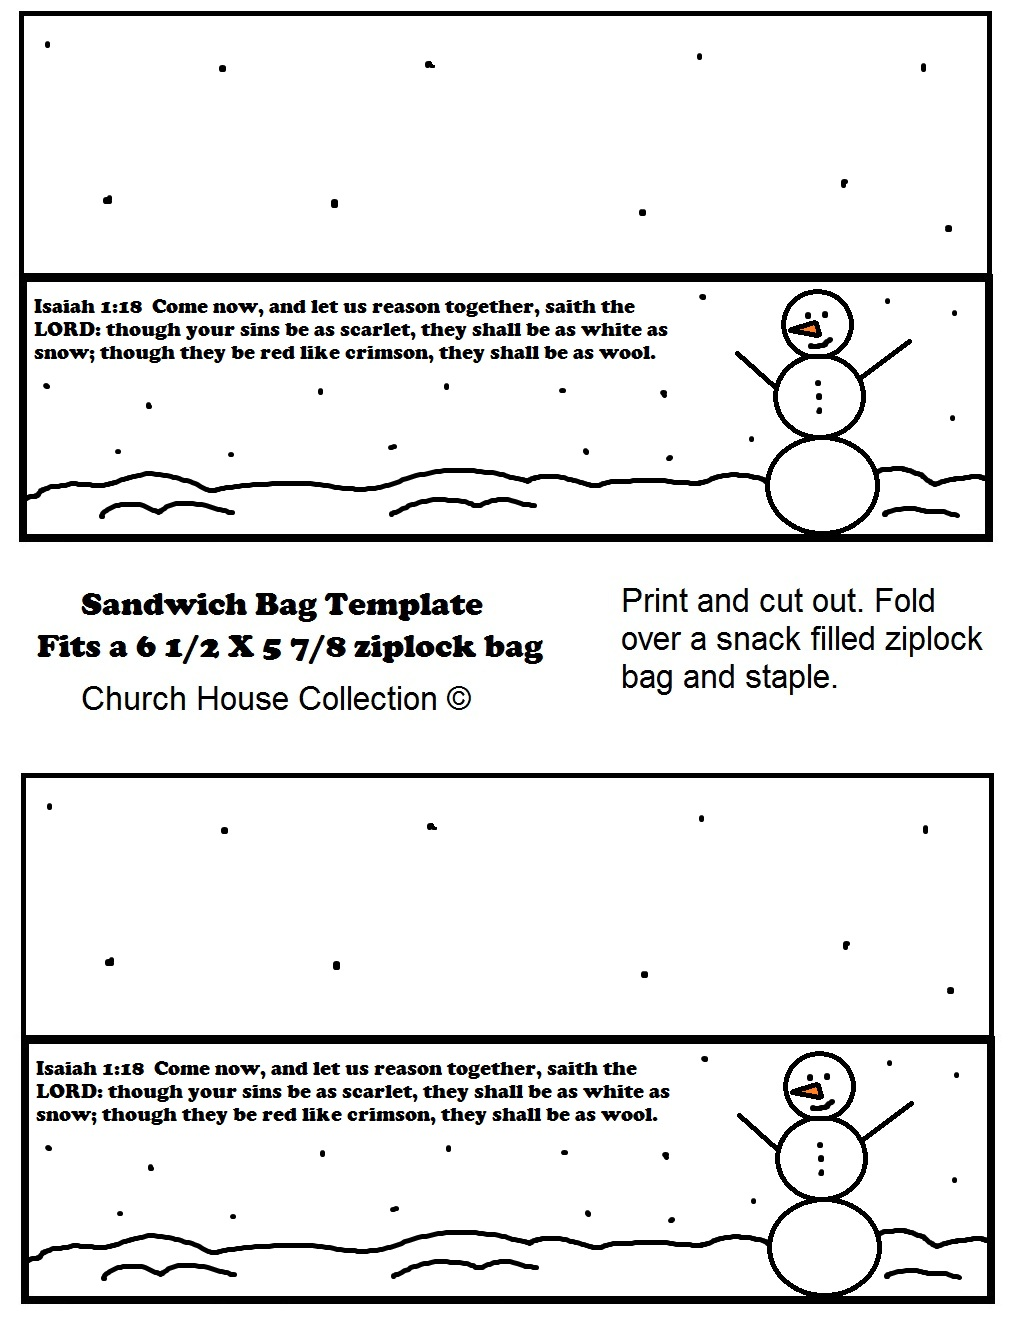 Free Christmas Printable Template Snowman Sandwich Bag Template by Church House Collection. Use with Free Christmas Sunday School Lessons. Have kids cut them out and staple over a ziplock bag filled with snacks.